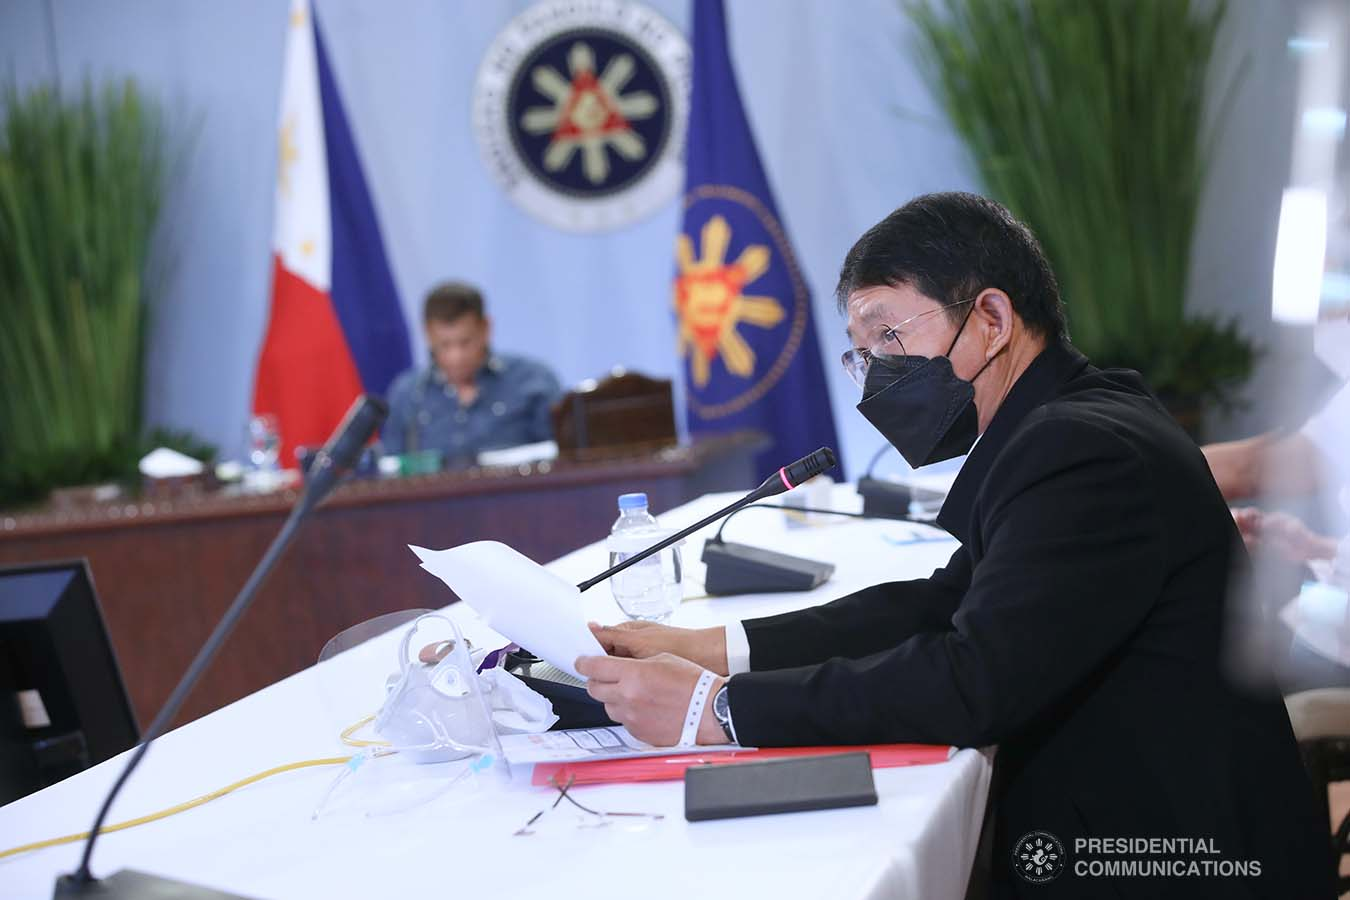 Interior and Local Government Secretary Eduardo Año gives an update to President Rodrigo Roa Duterte during a meeting with the Inter-Agency Task Force on the Emerging Infectious Diseases (IATF-EID) core members at the Malacañang Golf (Malago) Clubhouse in Malacañang Park, Manila on May 26, 2021. ROBINSON NIÑAL/ PRESIDENTIAL PHOTO